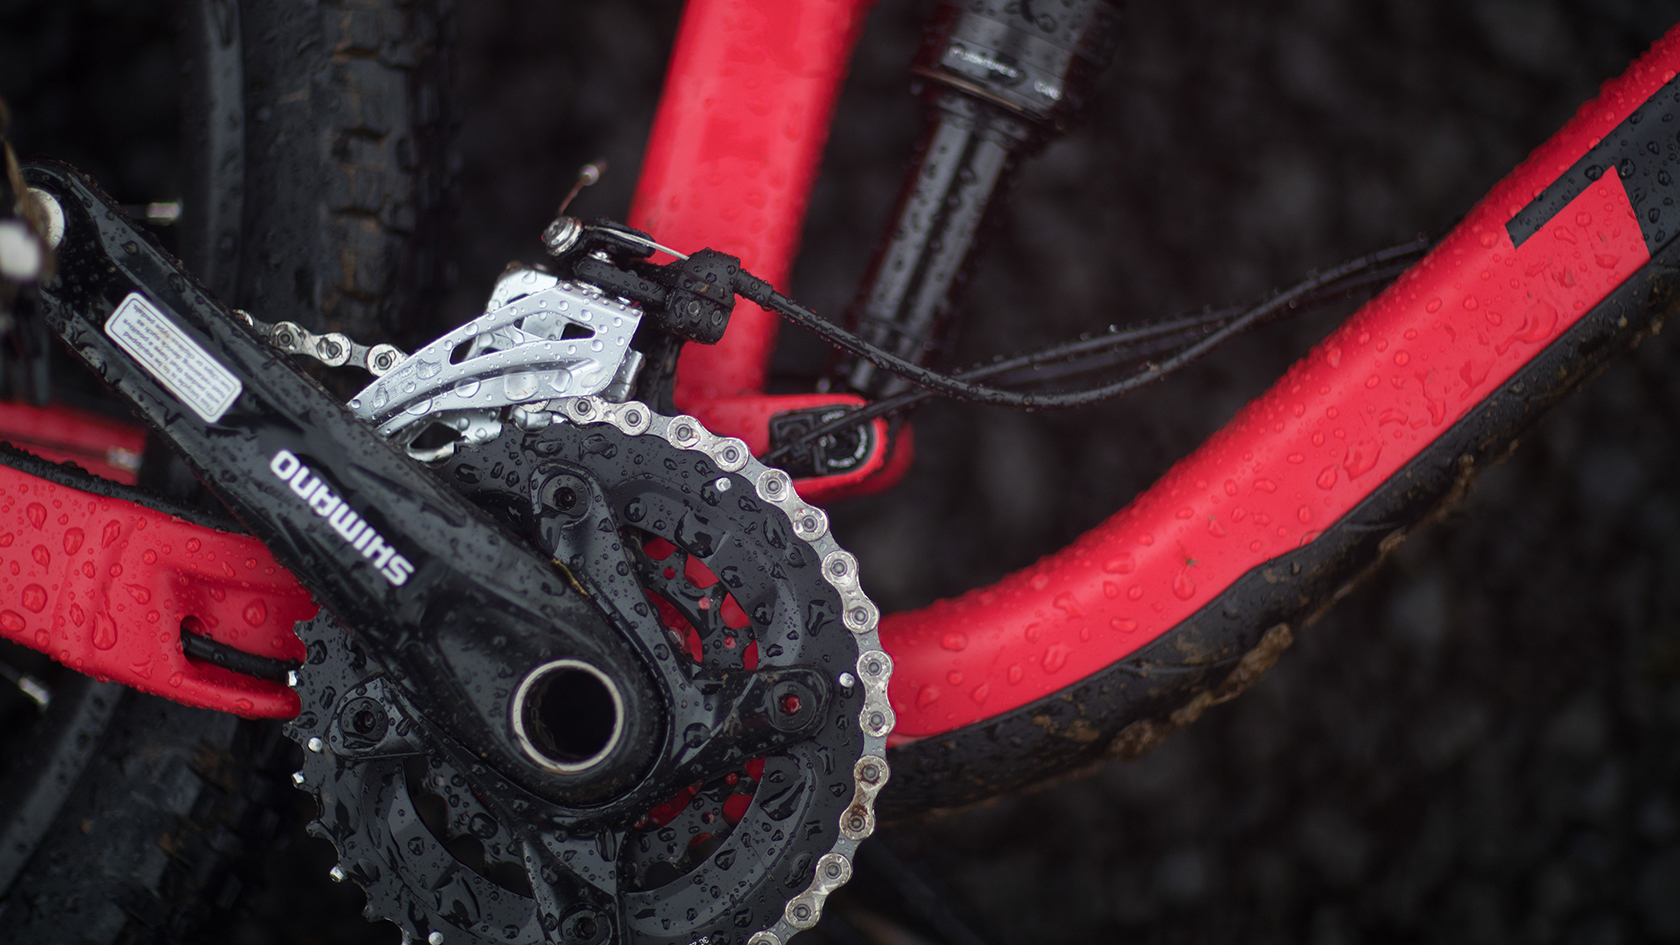 Bike parts explained: The chainset